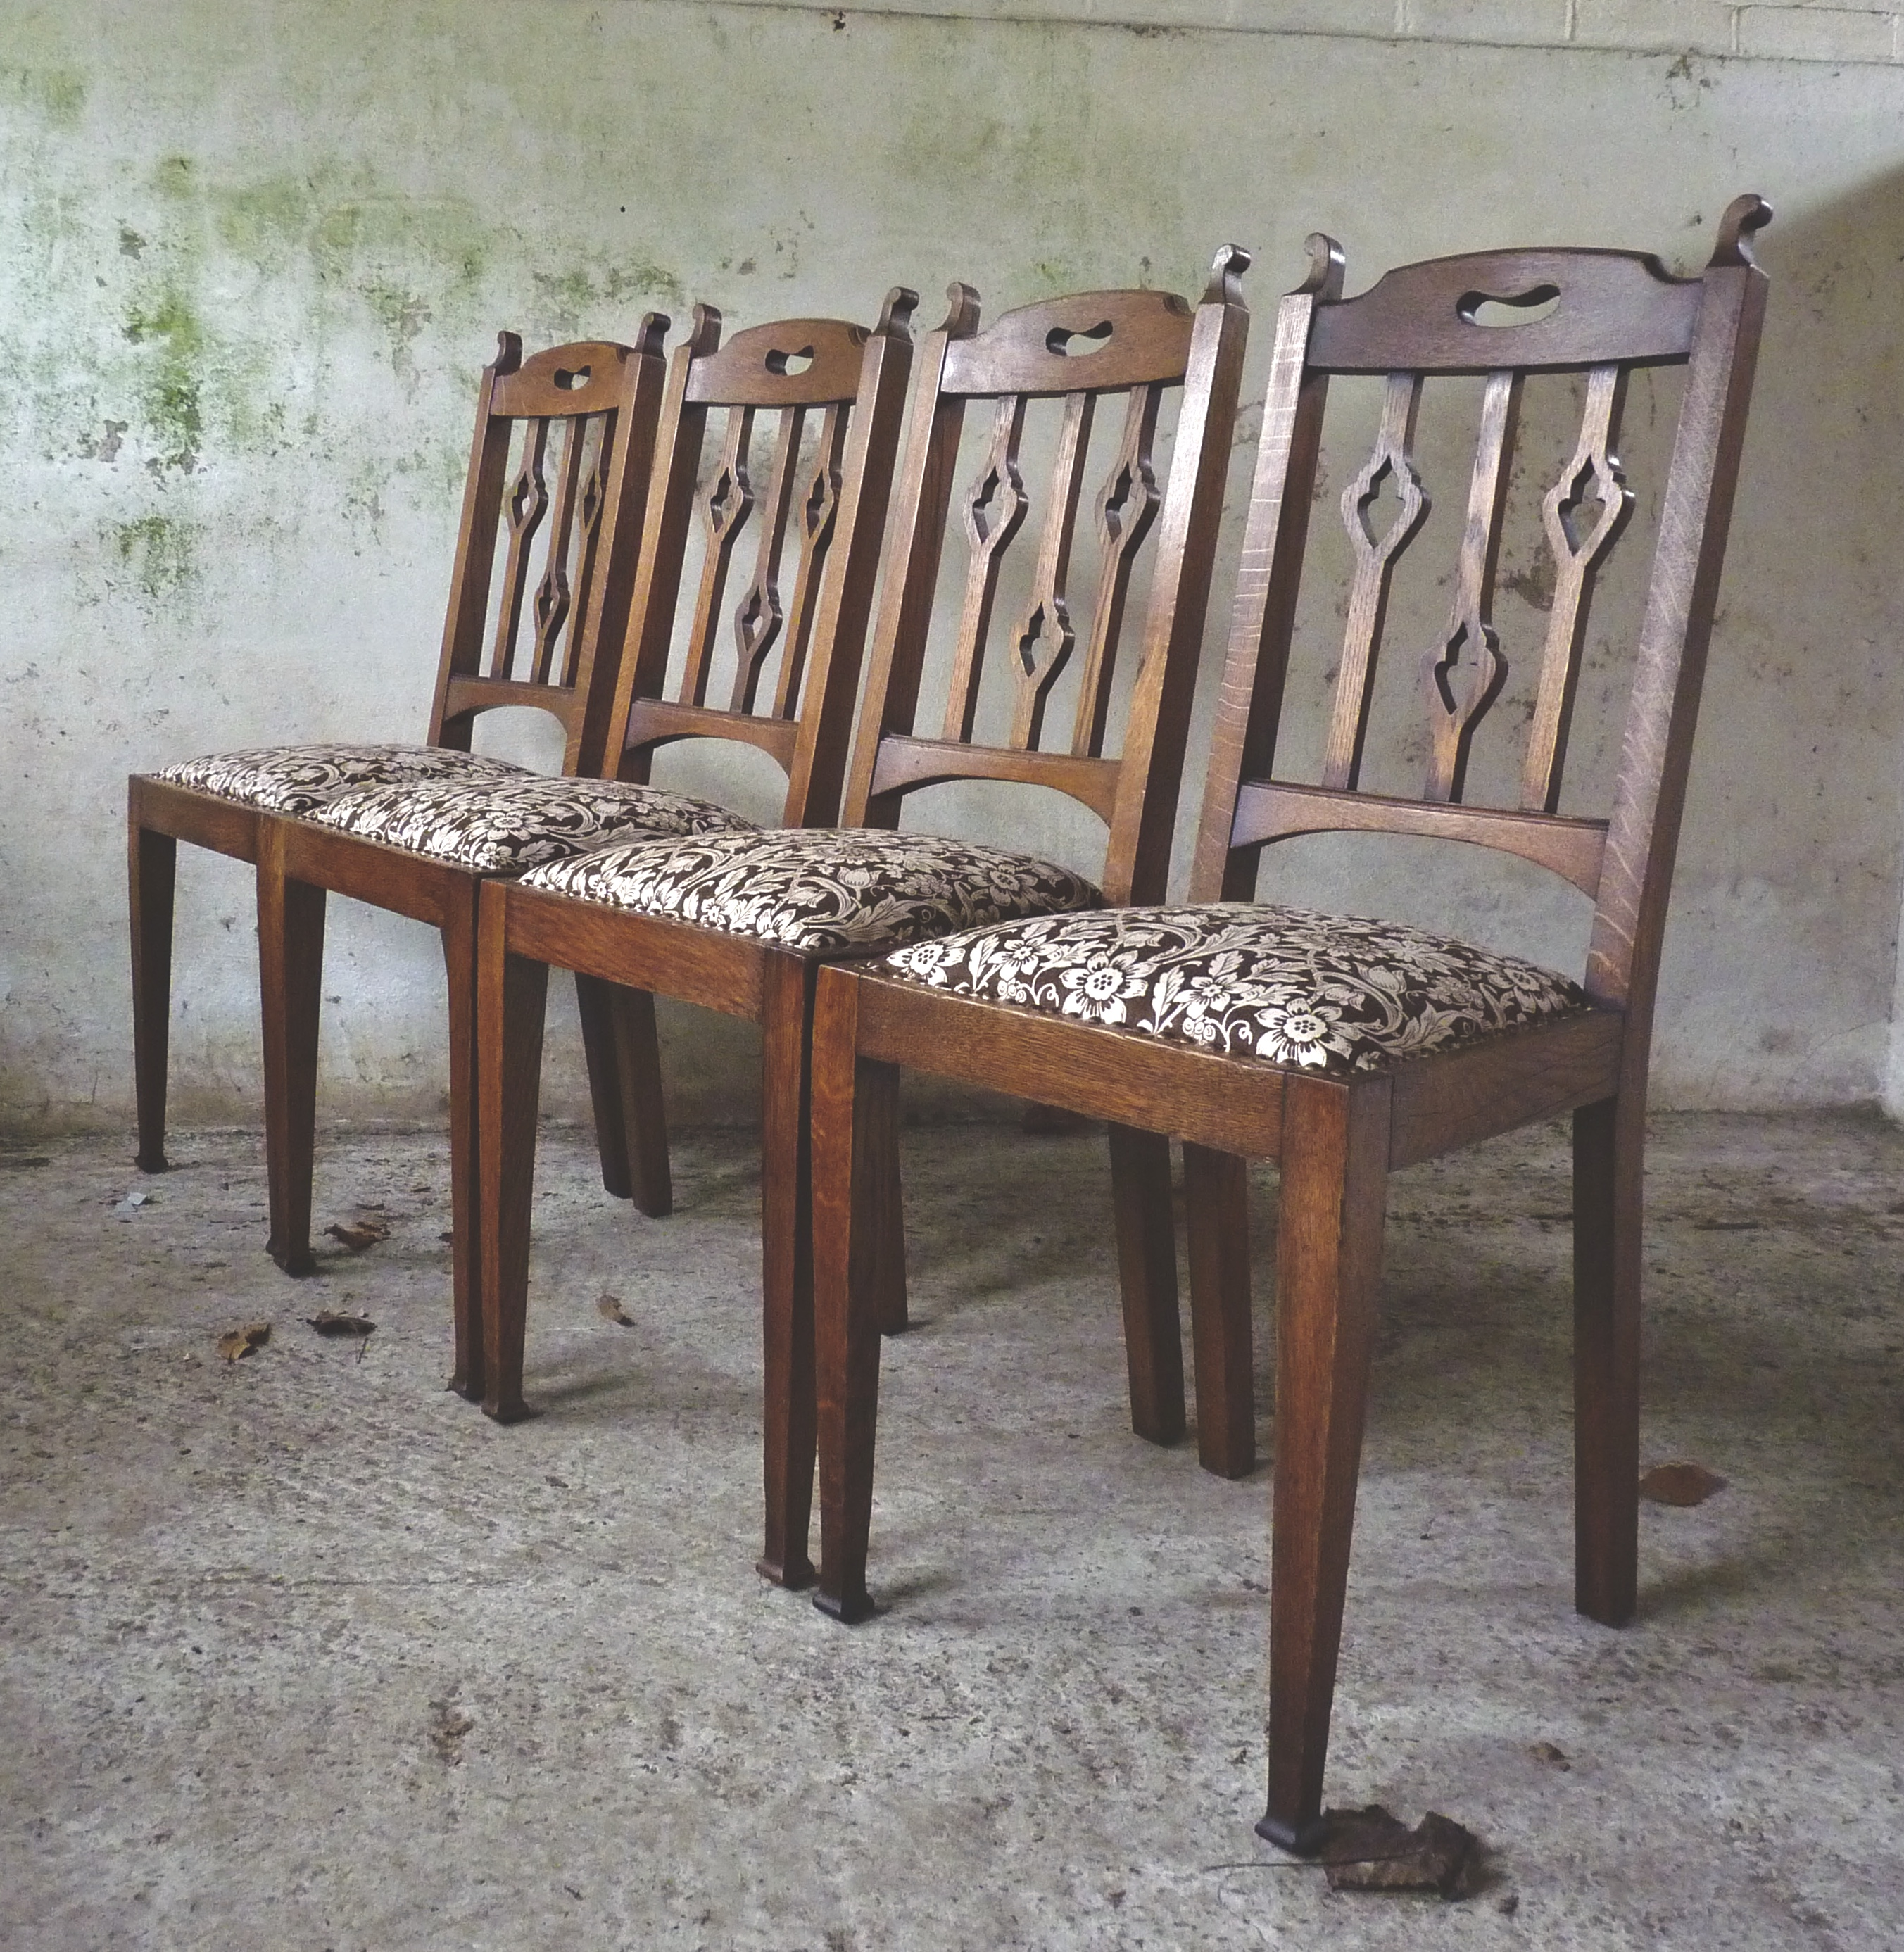 4x Arts and crafts style dining chairs